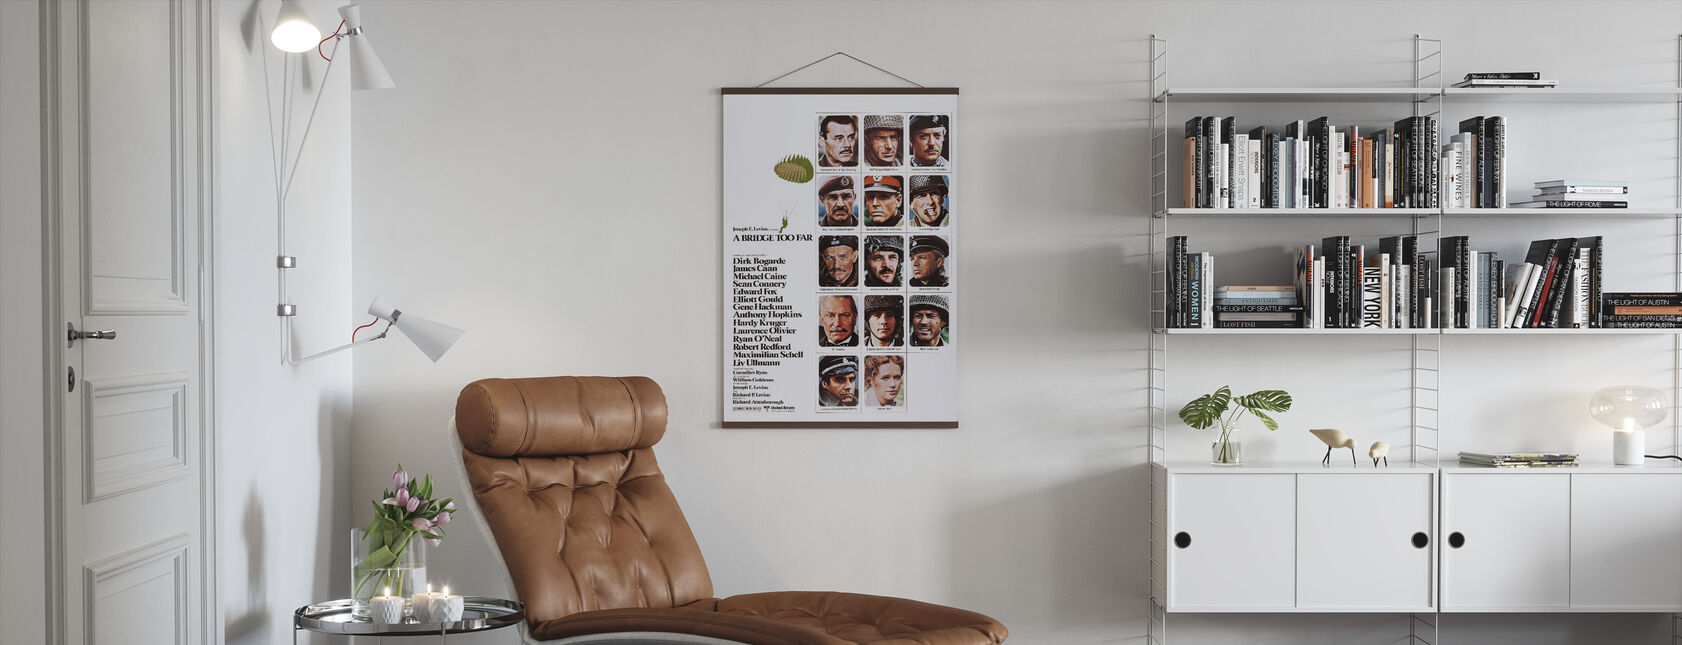 A Bridge Too Far - Poster - Living Room